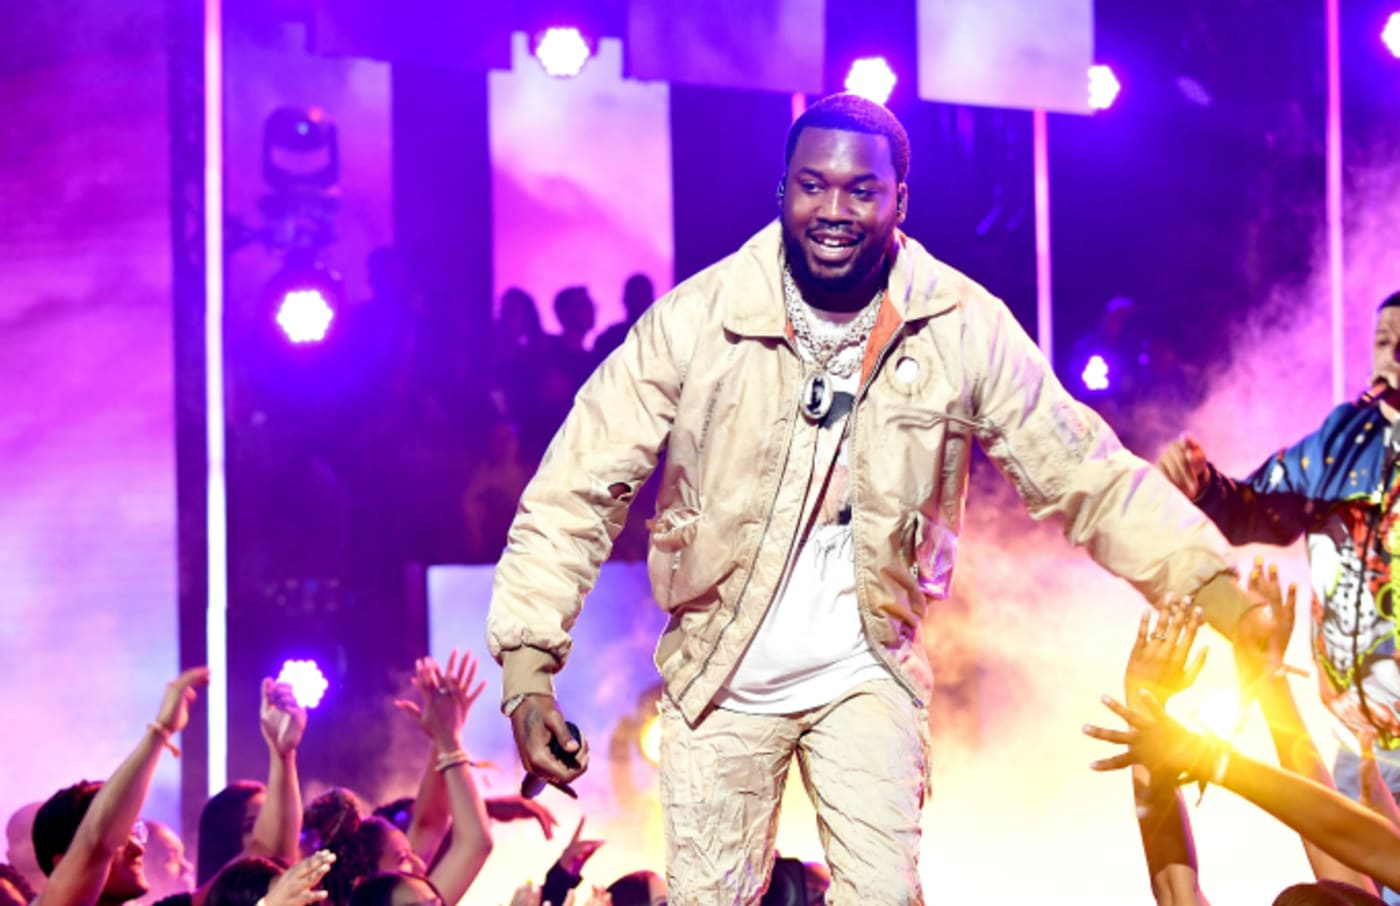 Meek Mill and DJ Khaled perform onstage at the 2019 BET Awards